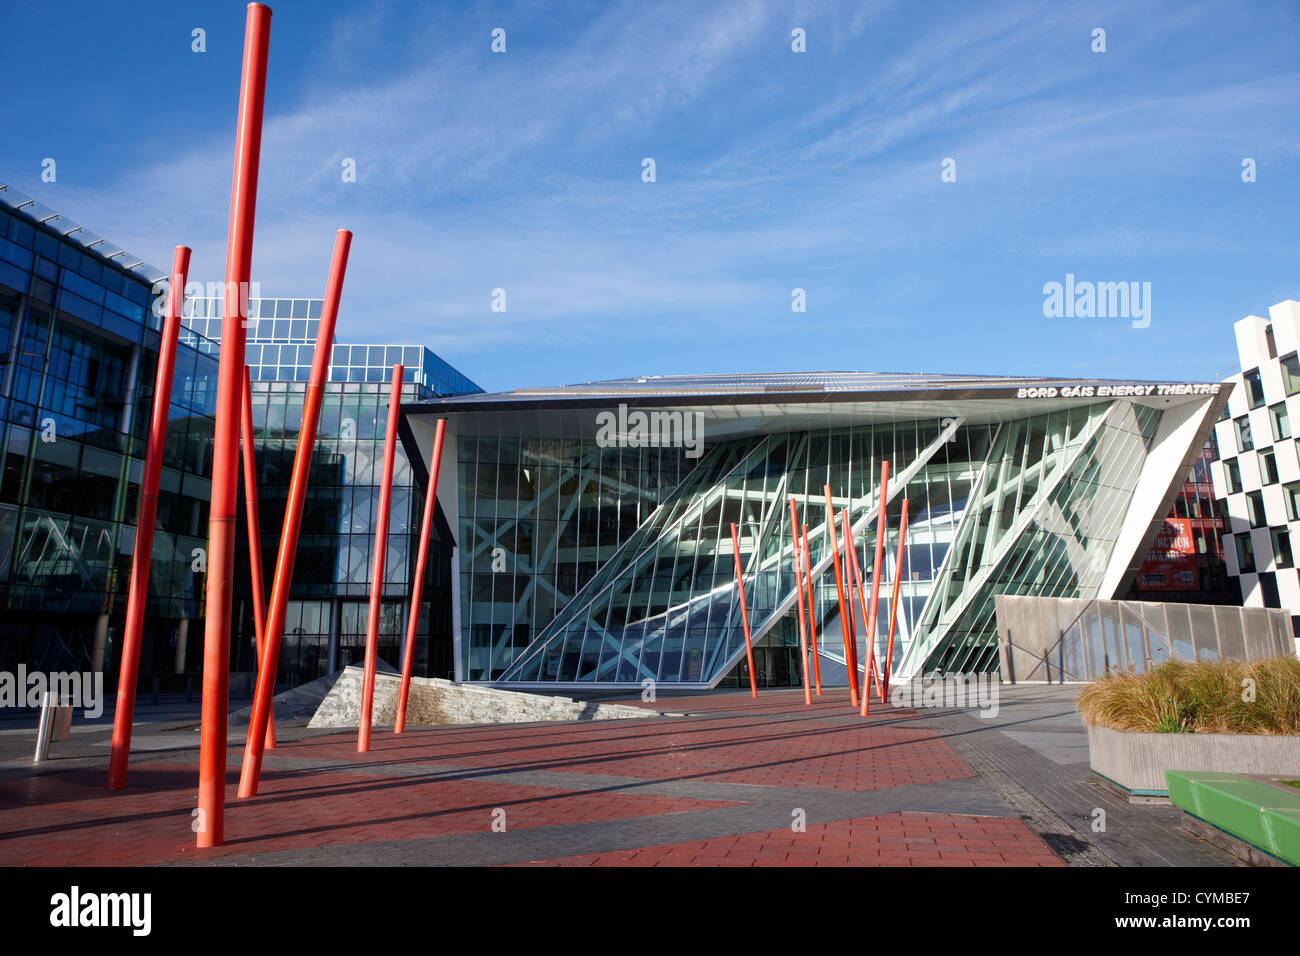 bord gais energy theatre docklands grand canal quay dublin republic of ireland - Stock Image